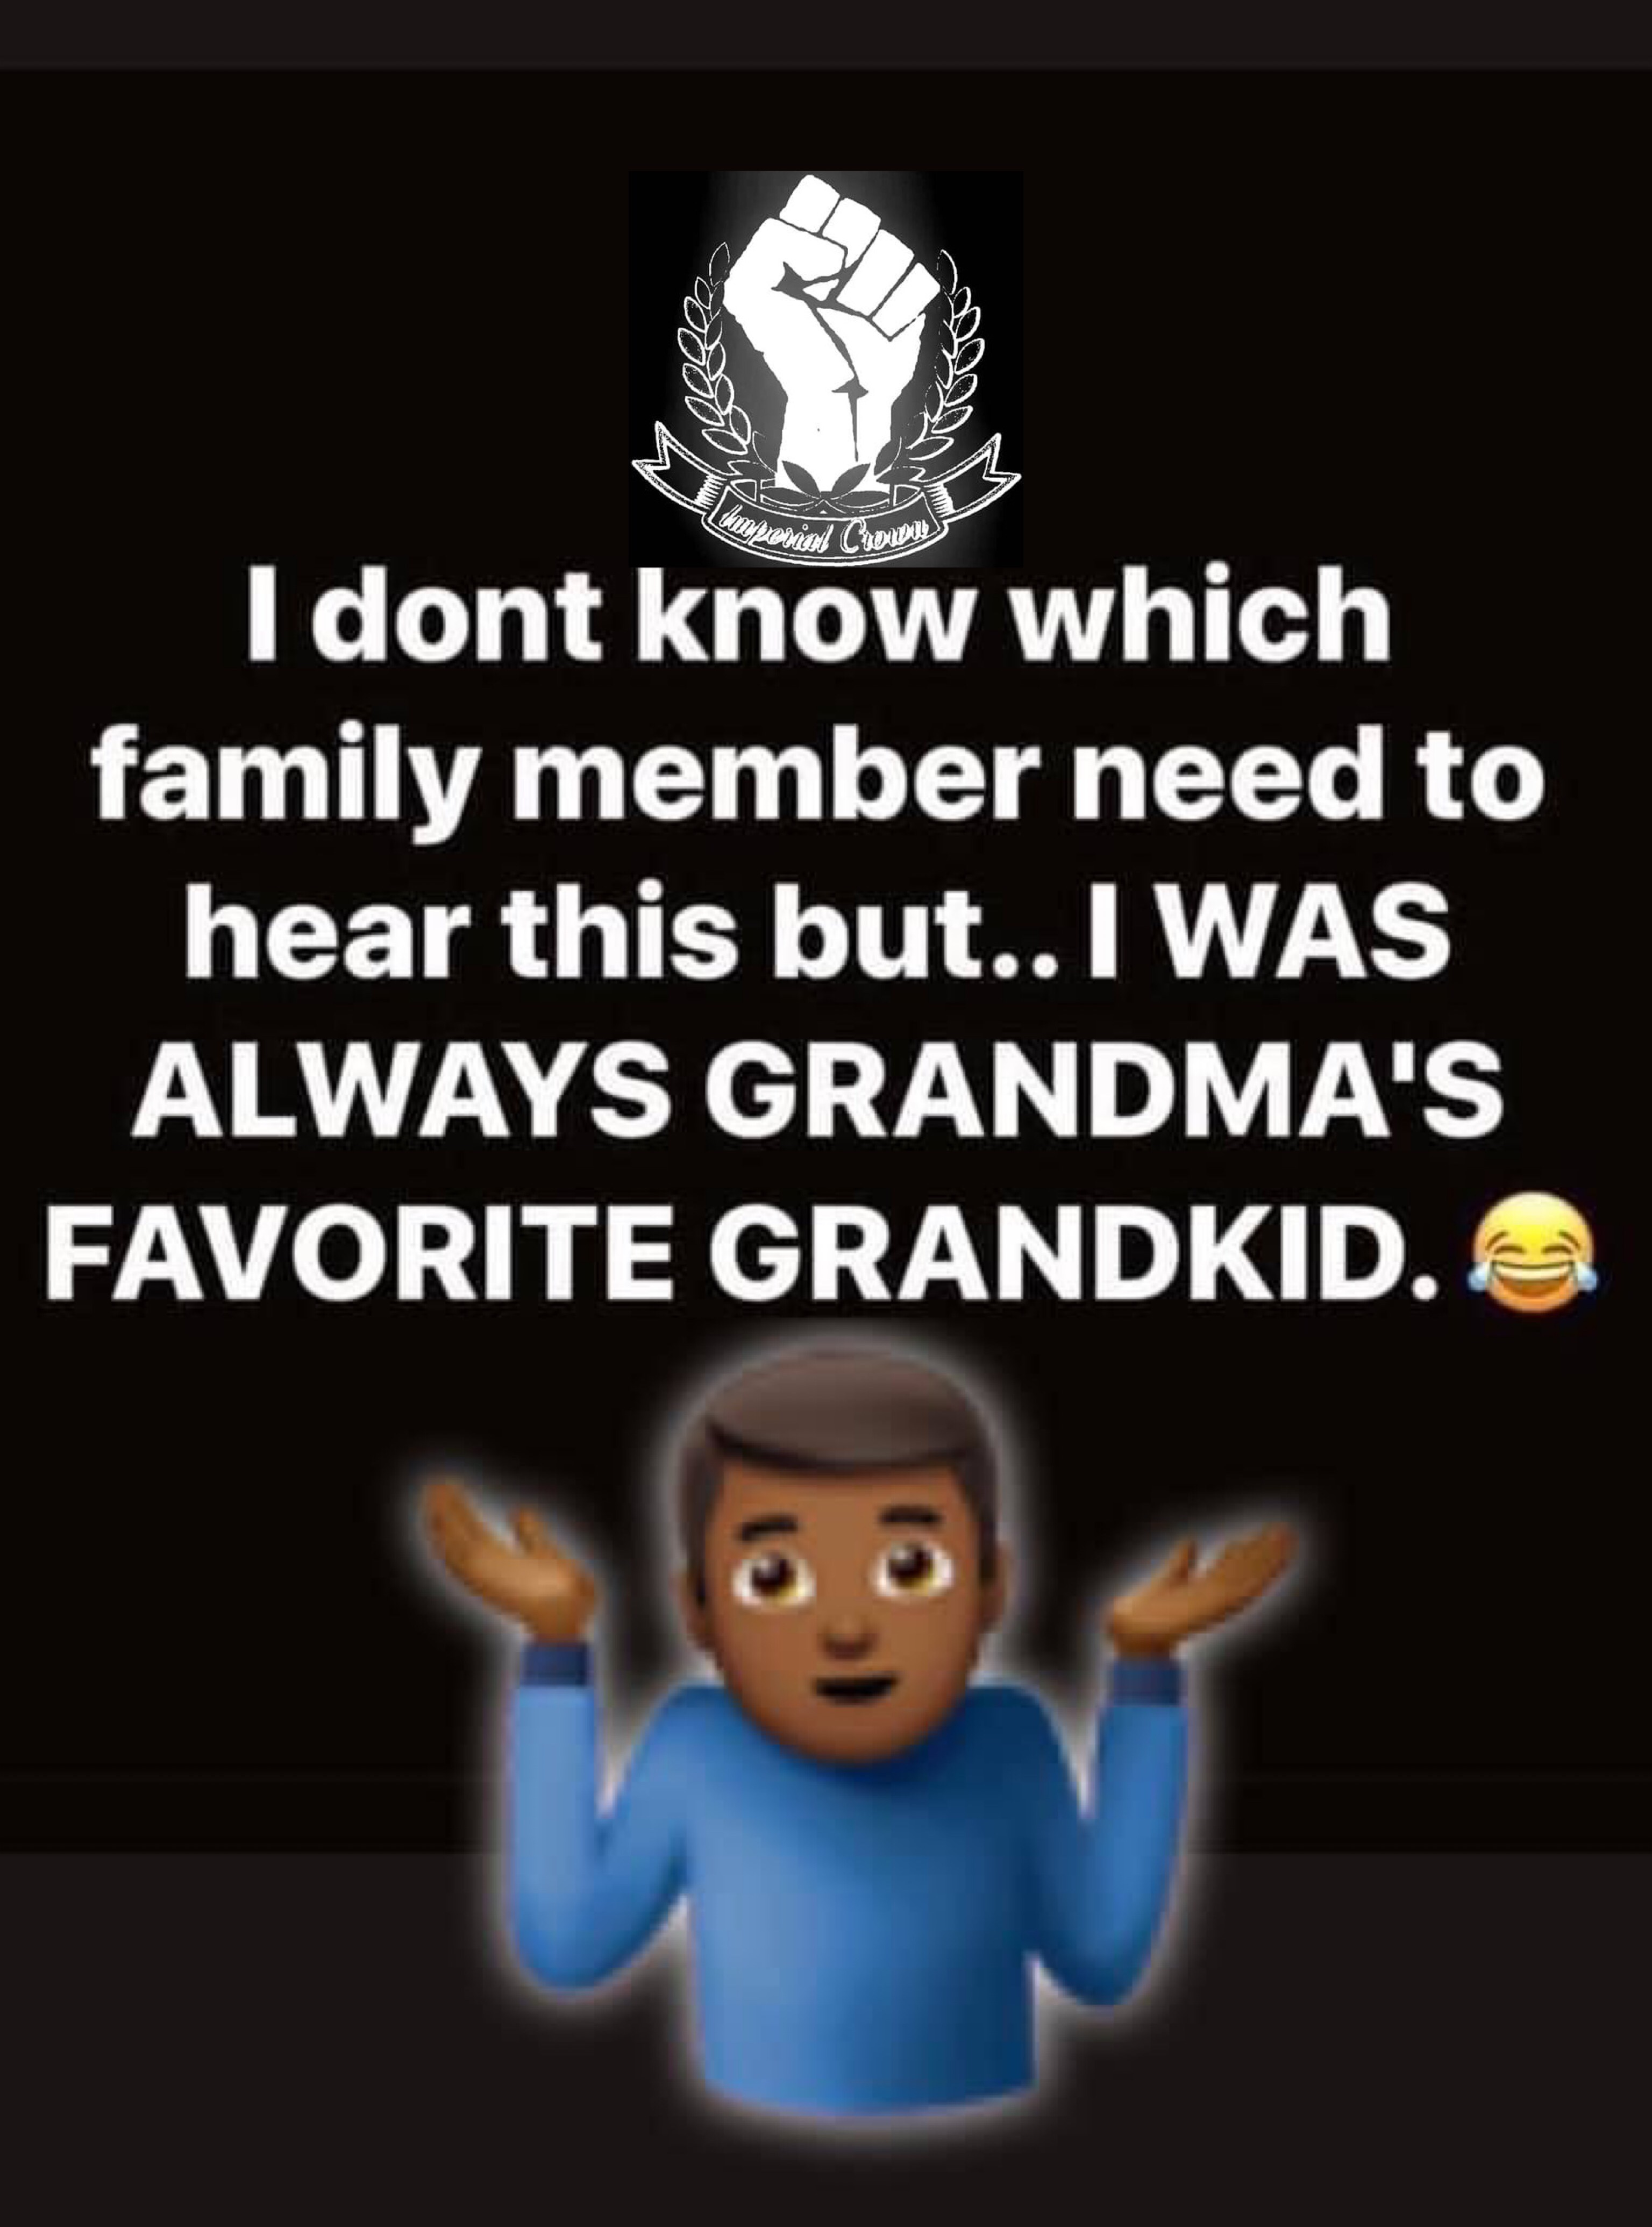 I don't know which family member need to hear this but I was always grandma's favorite grandkid